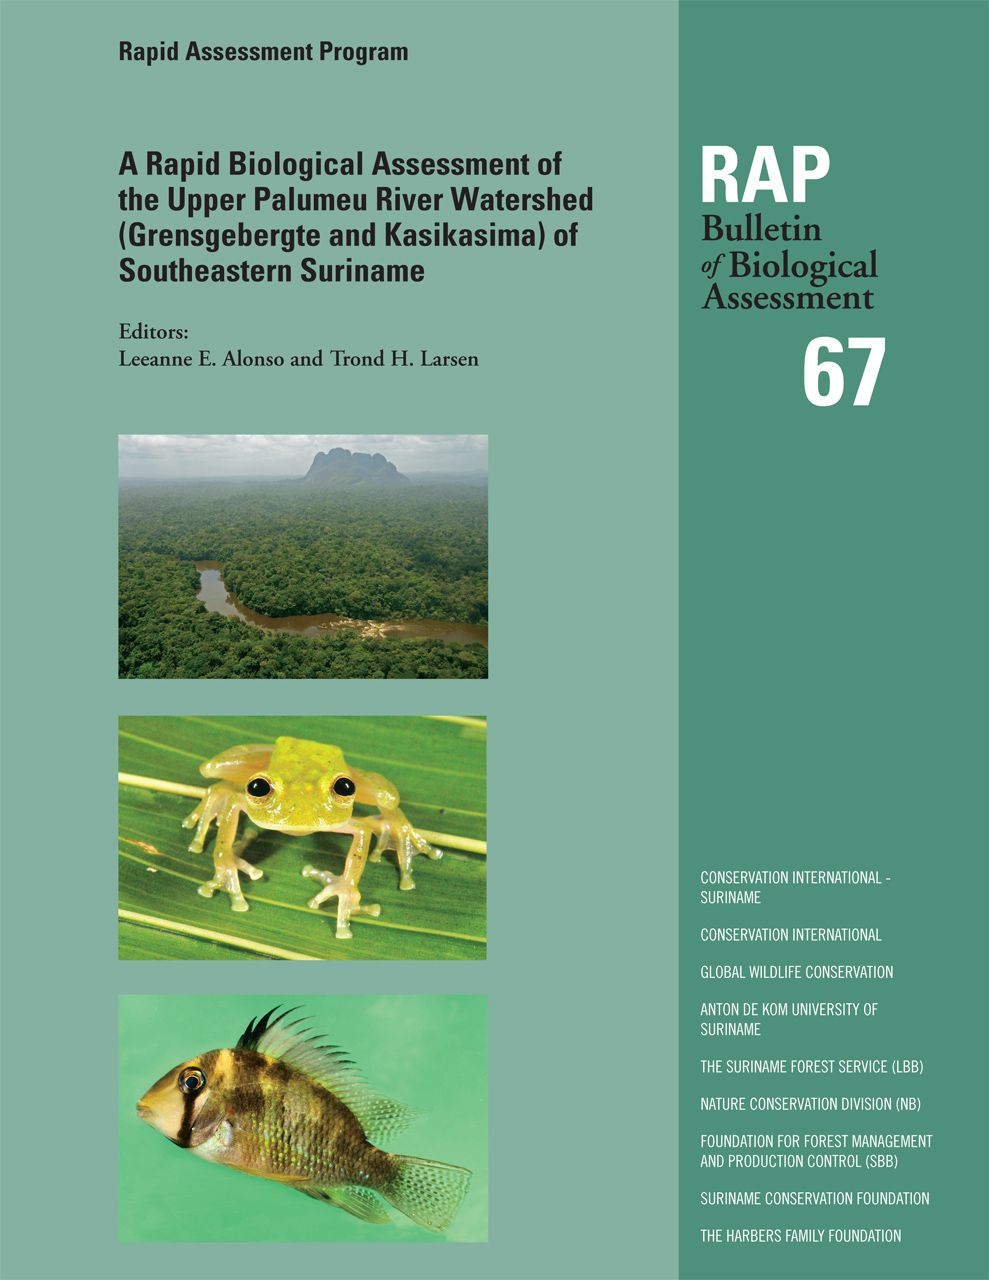 A Rapid Biological Assessment of the Upper Palumeu River Watershed (Grensgebergte and Kasikasima) of Southeastern Suriname: RAP Bulletin of Biological Assessment 67